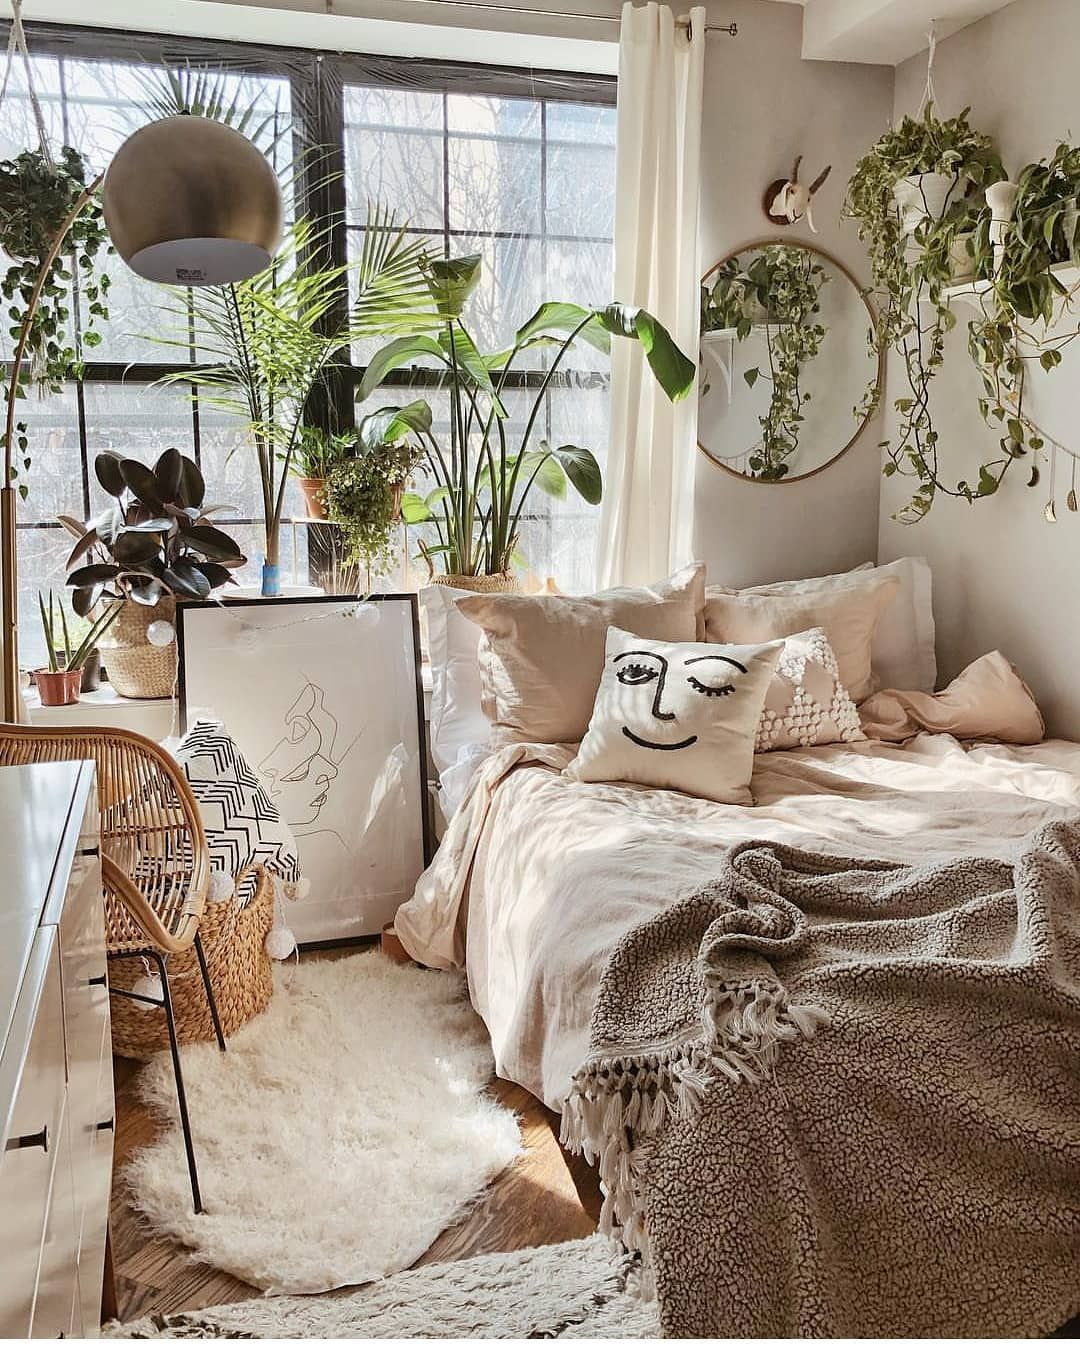 Where Plants Interiors Meet On Instagram We Jnaydaily